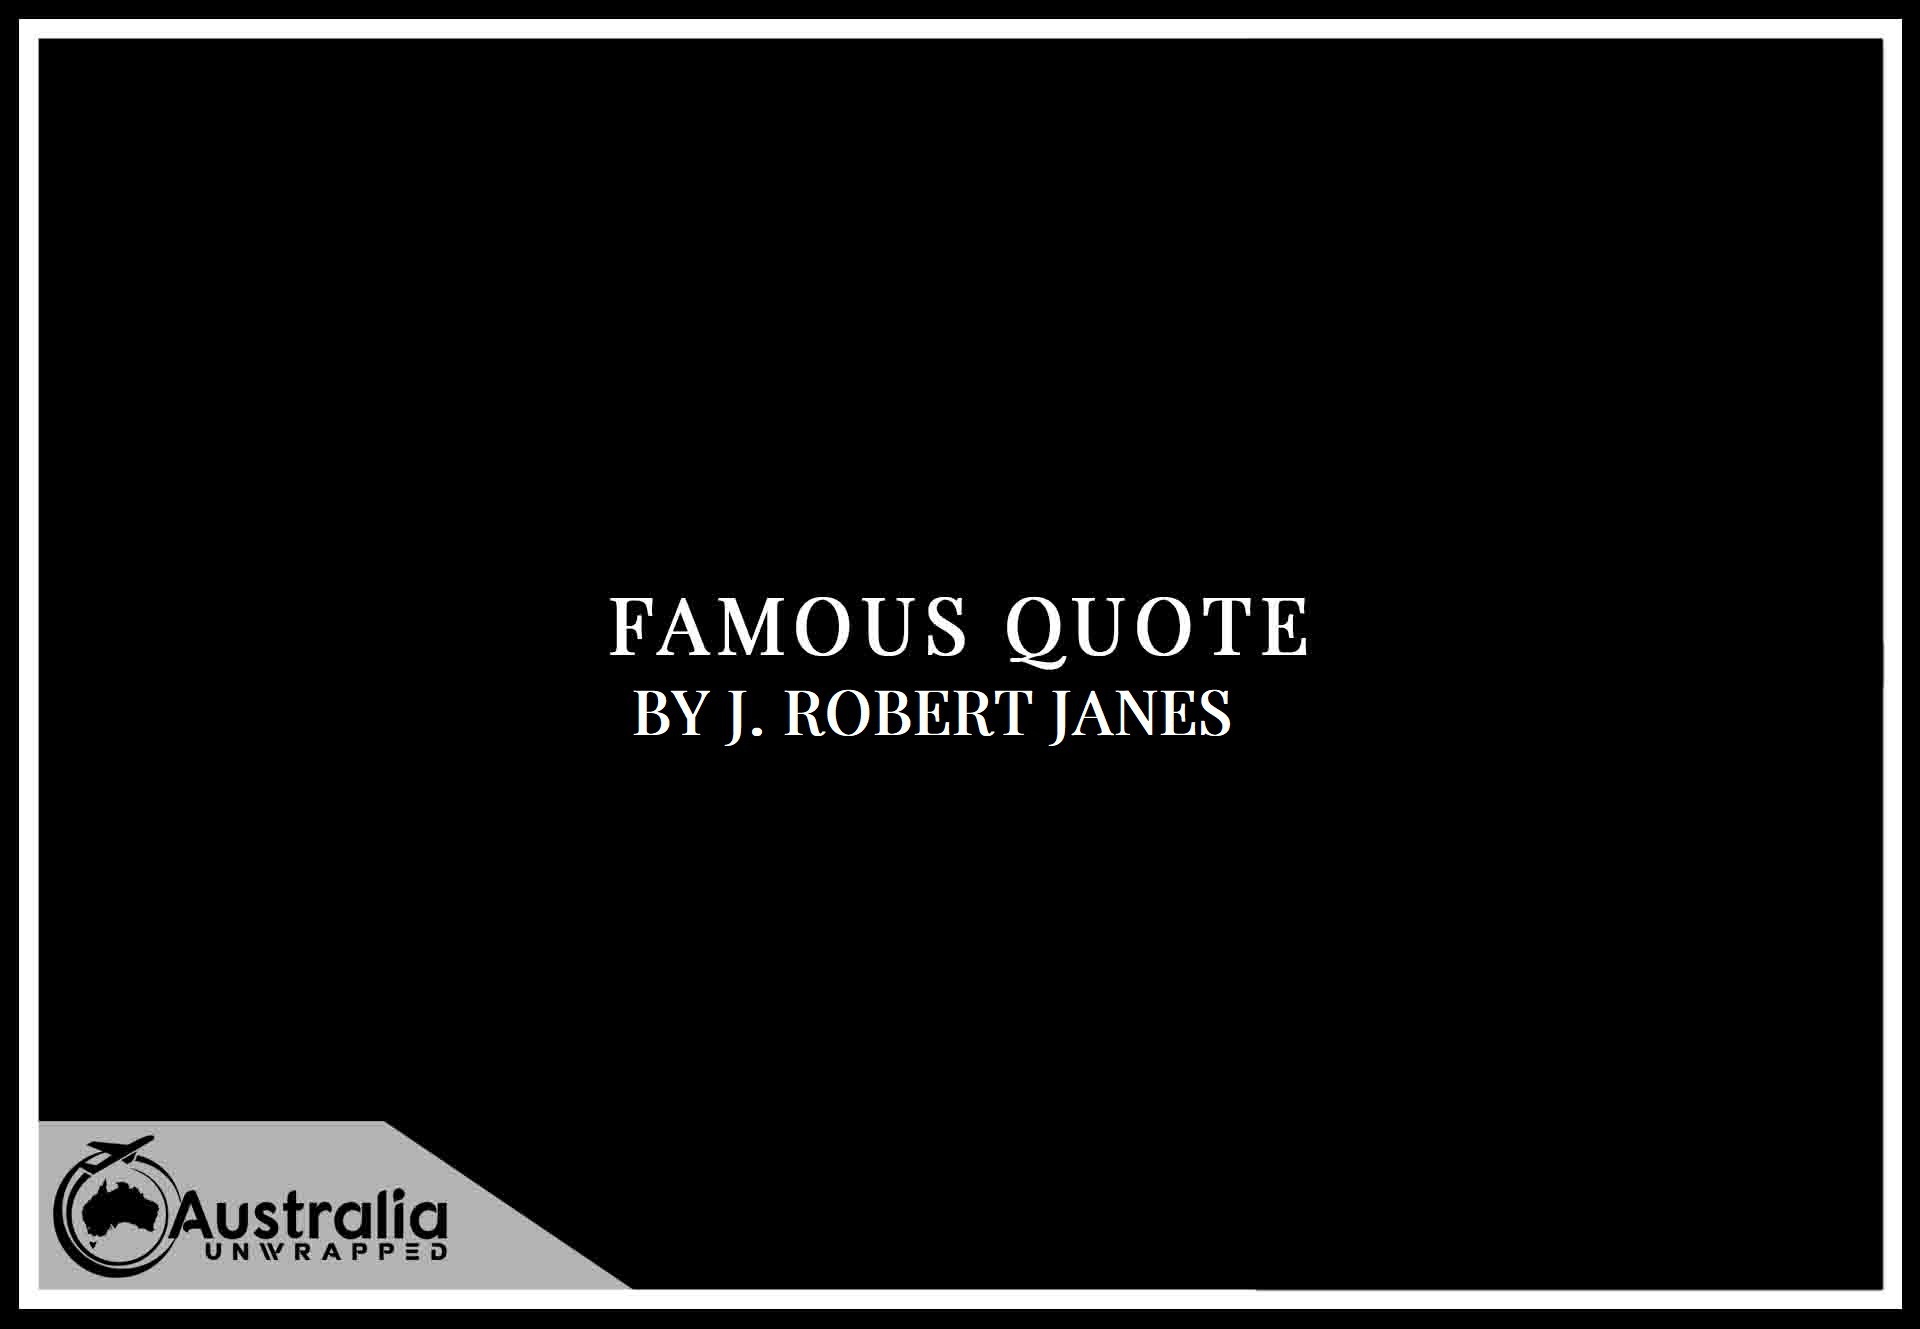 Top 1 Famous Quotes by Author J. Robert Janes